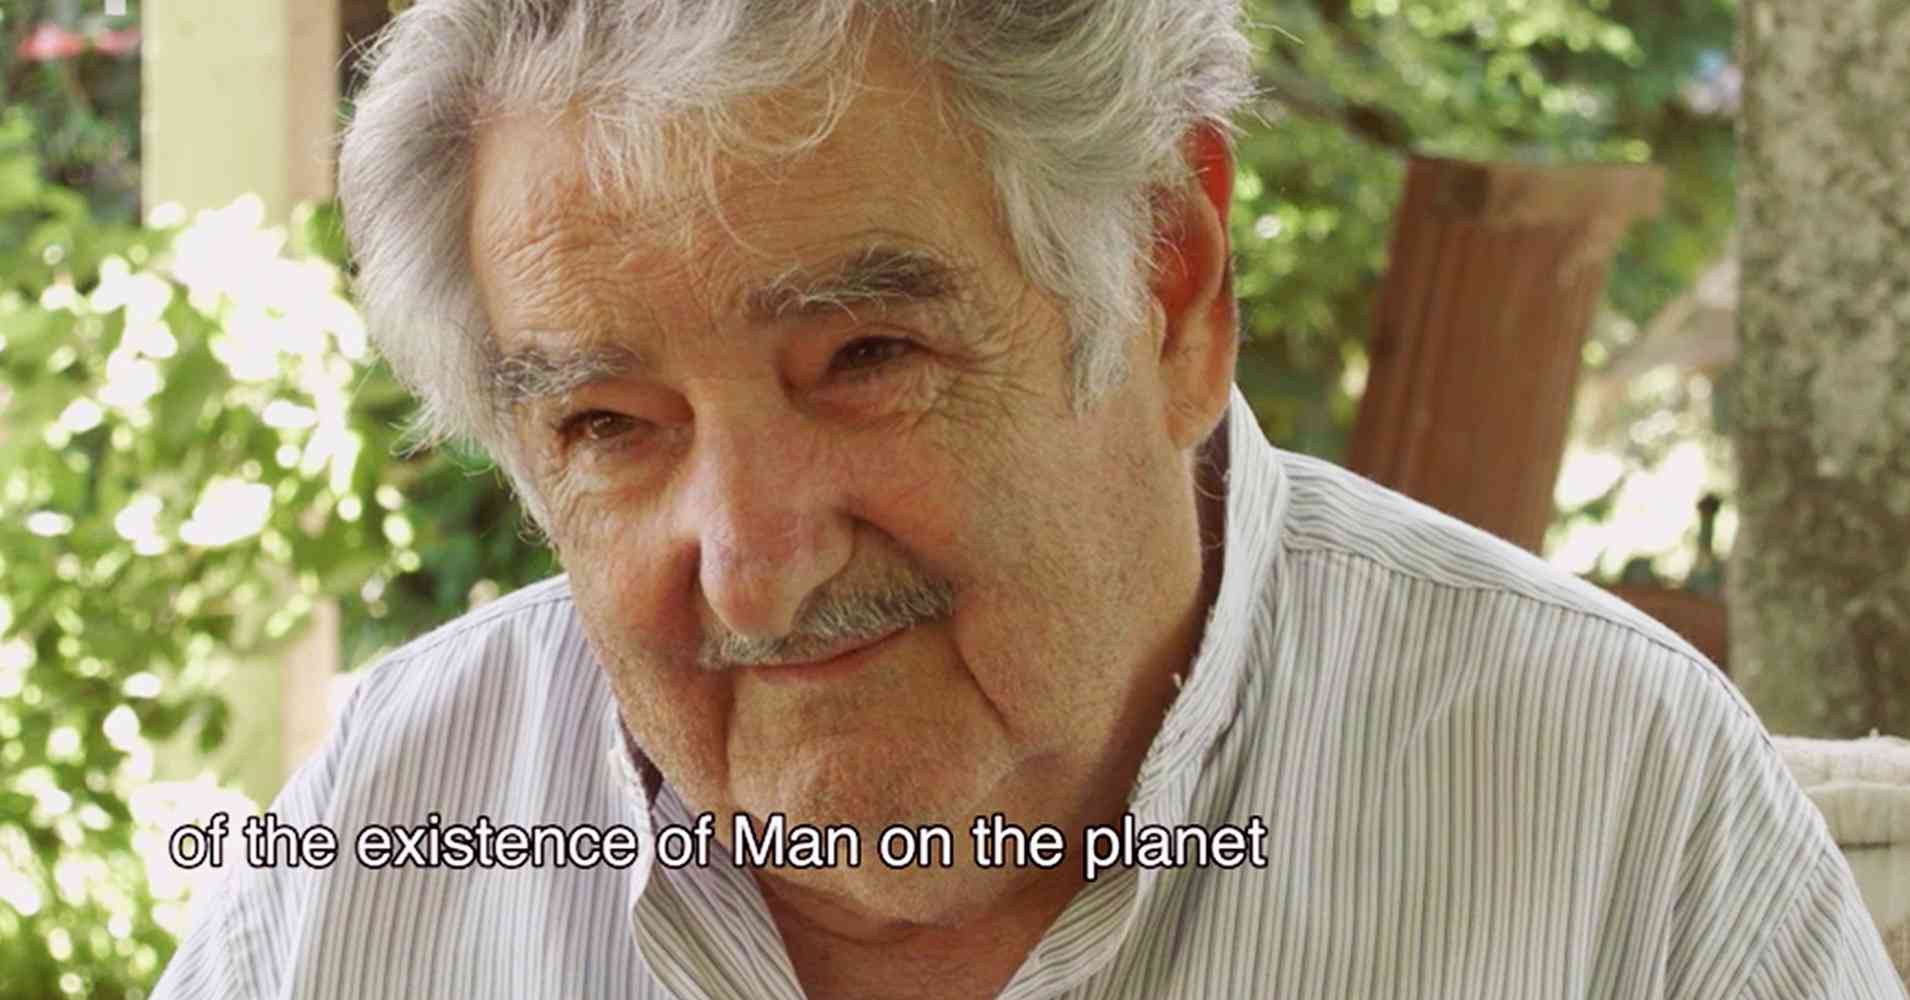 'Politics, Economics and Environment'. Documentary. Section from 3 hour interview with Pepe Mujica, President of Uruguay - A unique interview with one of the most enigmatic and profound political figures of the 21 century.